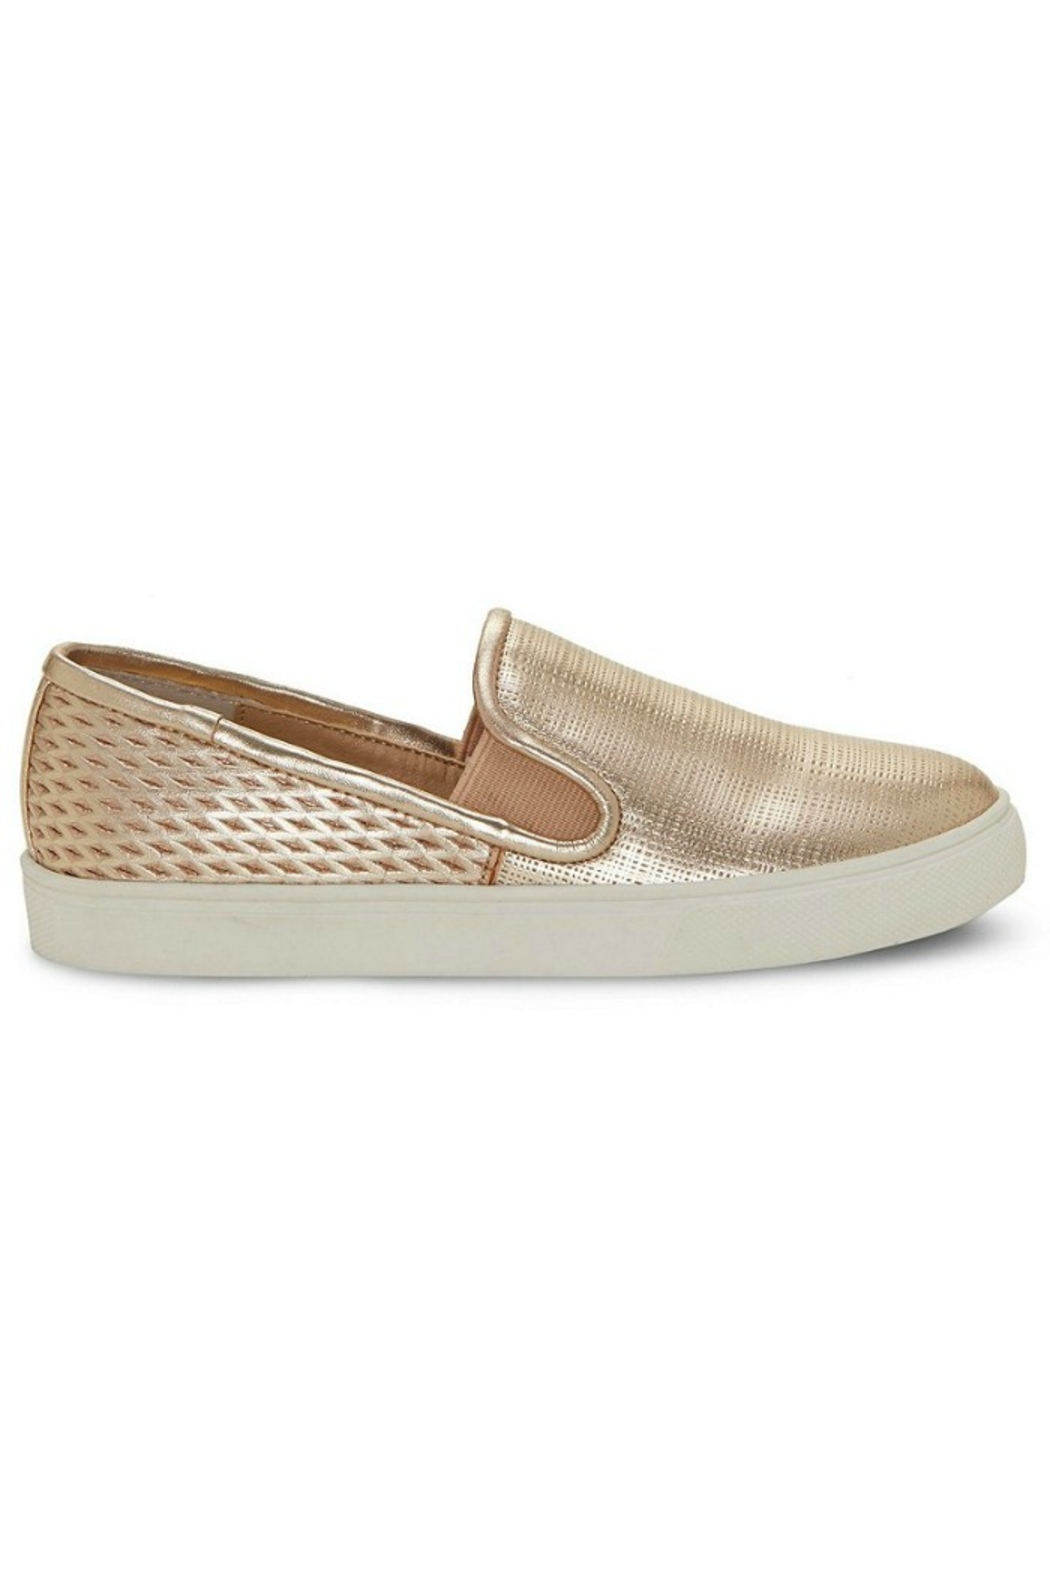 Vince Camuto Bestina Vincent Camuto - Front Full Image